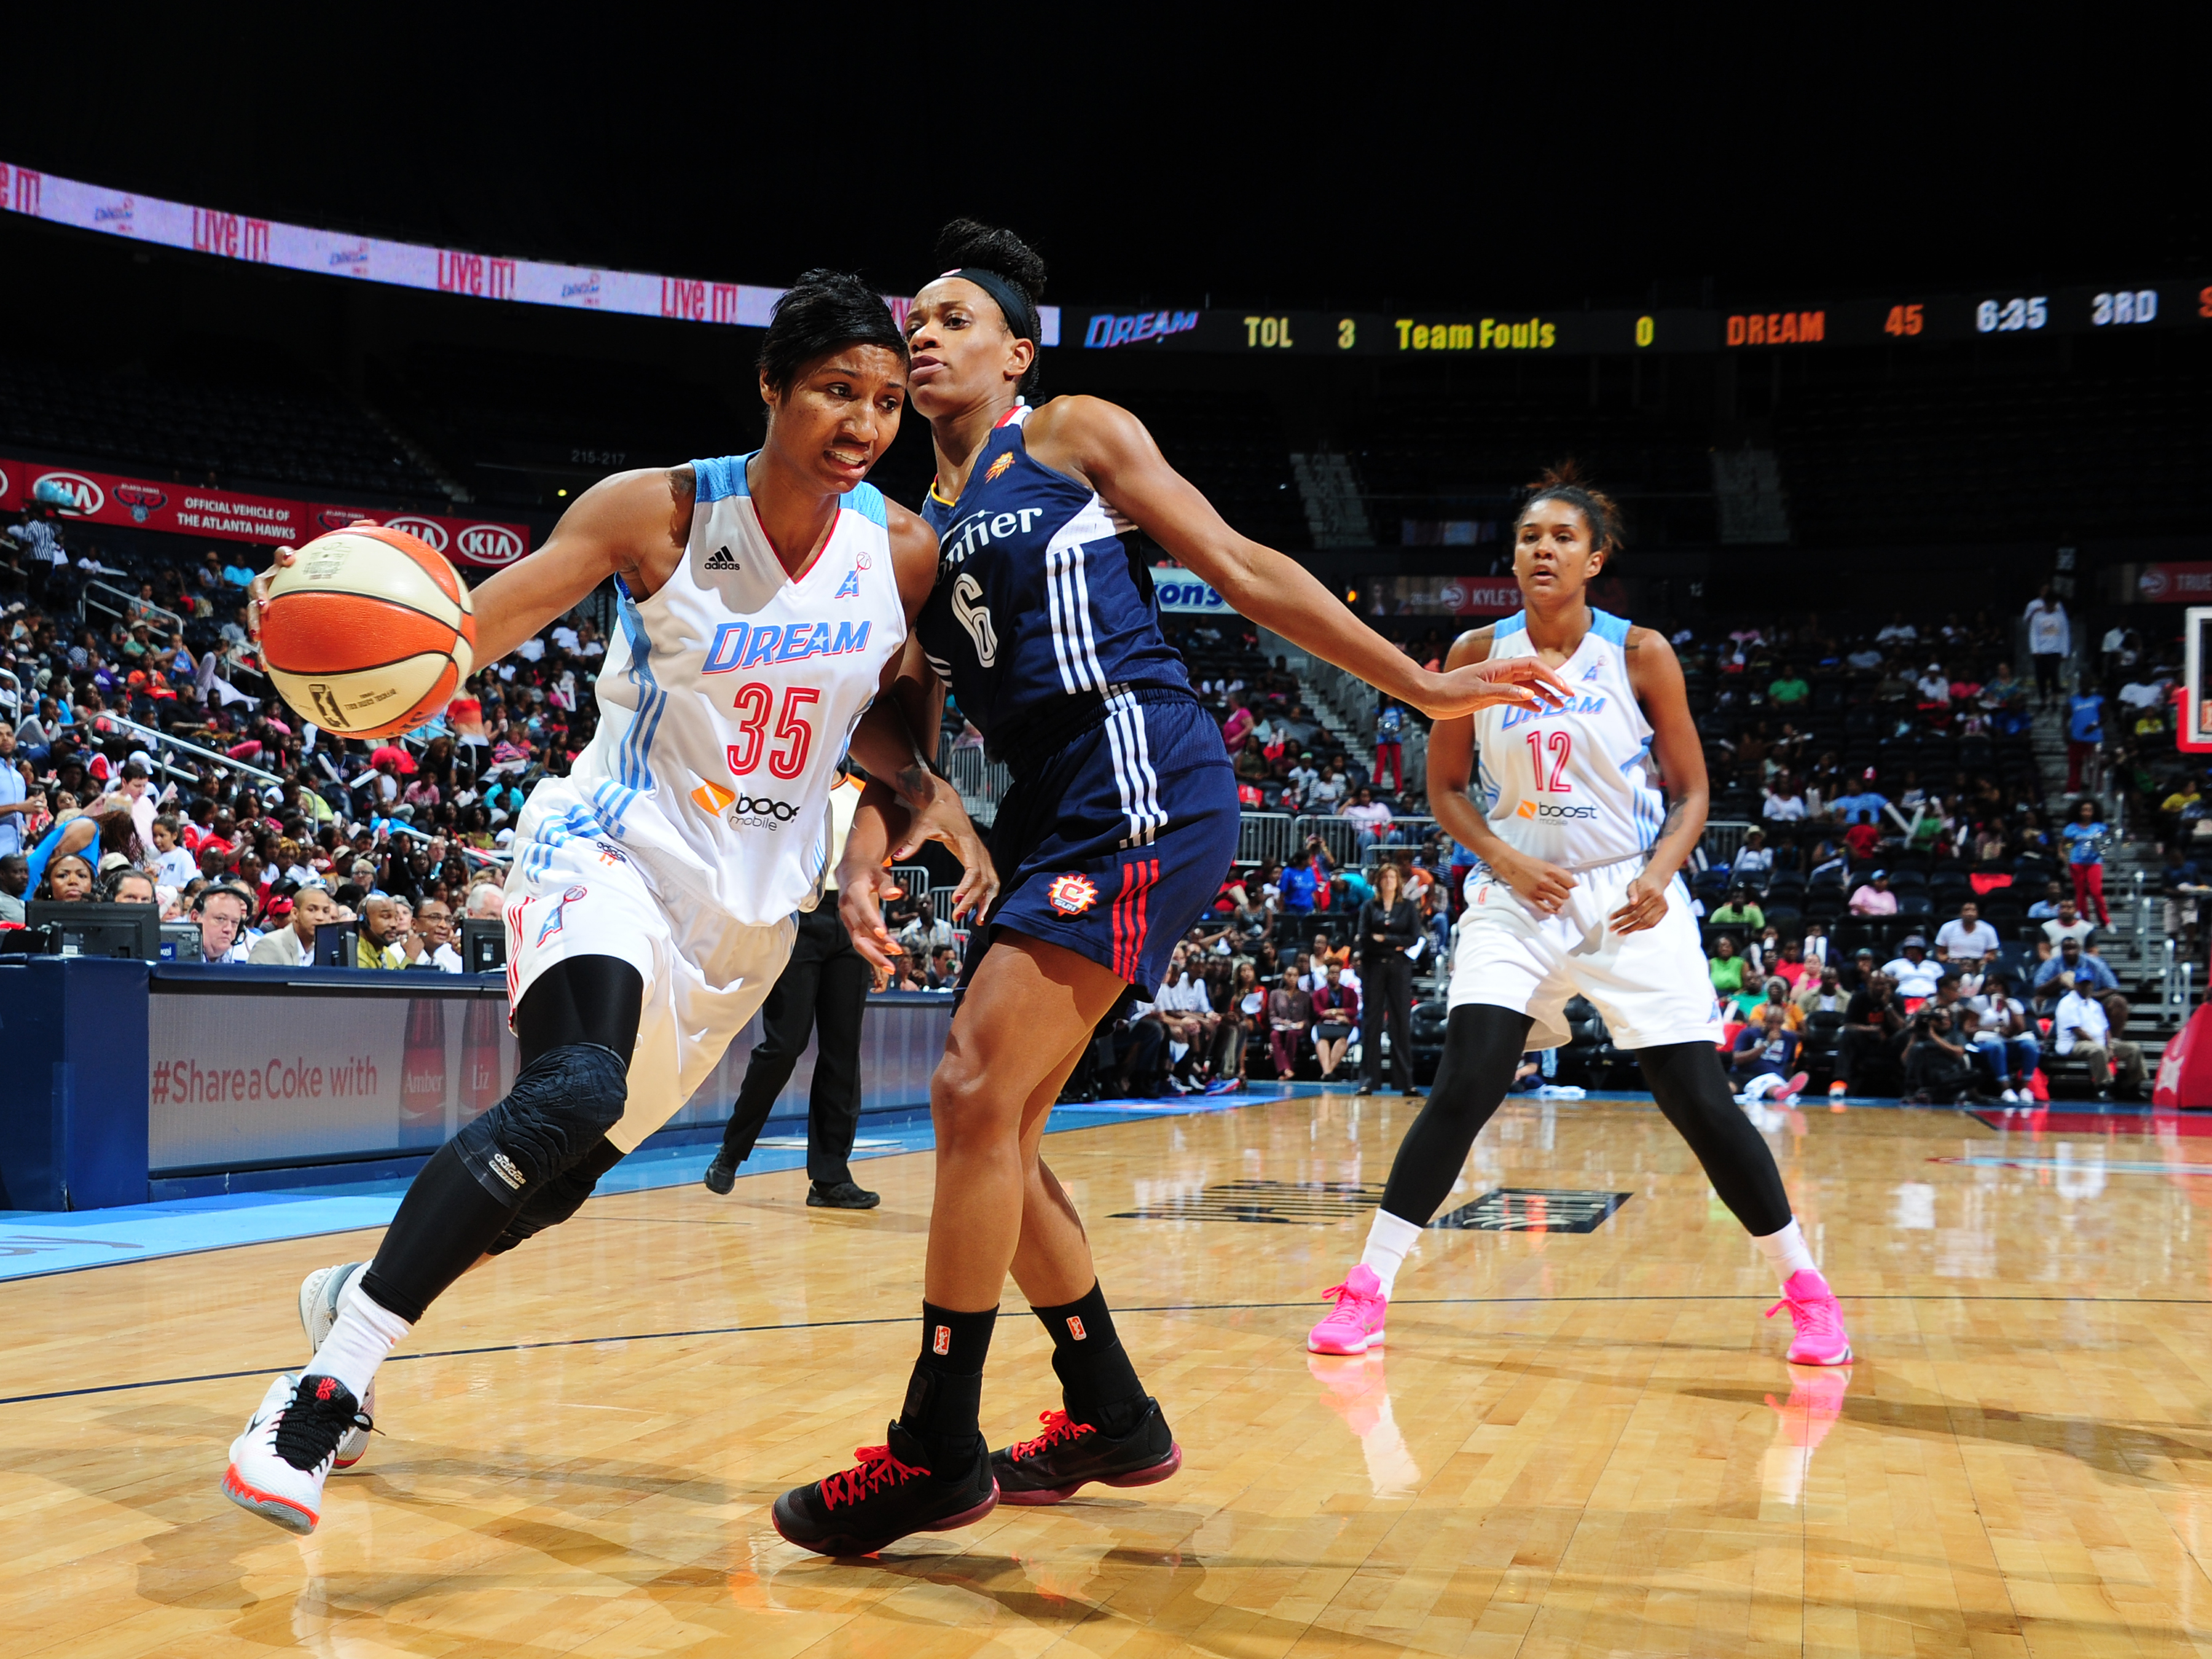 ATLANTA, GA - AUGUST 16: Angel McCoughtry #35 of the Atlanta Dream drives to the basket against Jasmine Thomas #6 of the Connecticut Sun on August 16, 2015 at Philips Arena in Atlanta, Georgia.  (Photo by Scott Cunningham/NBAE via Getty Images)